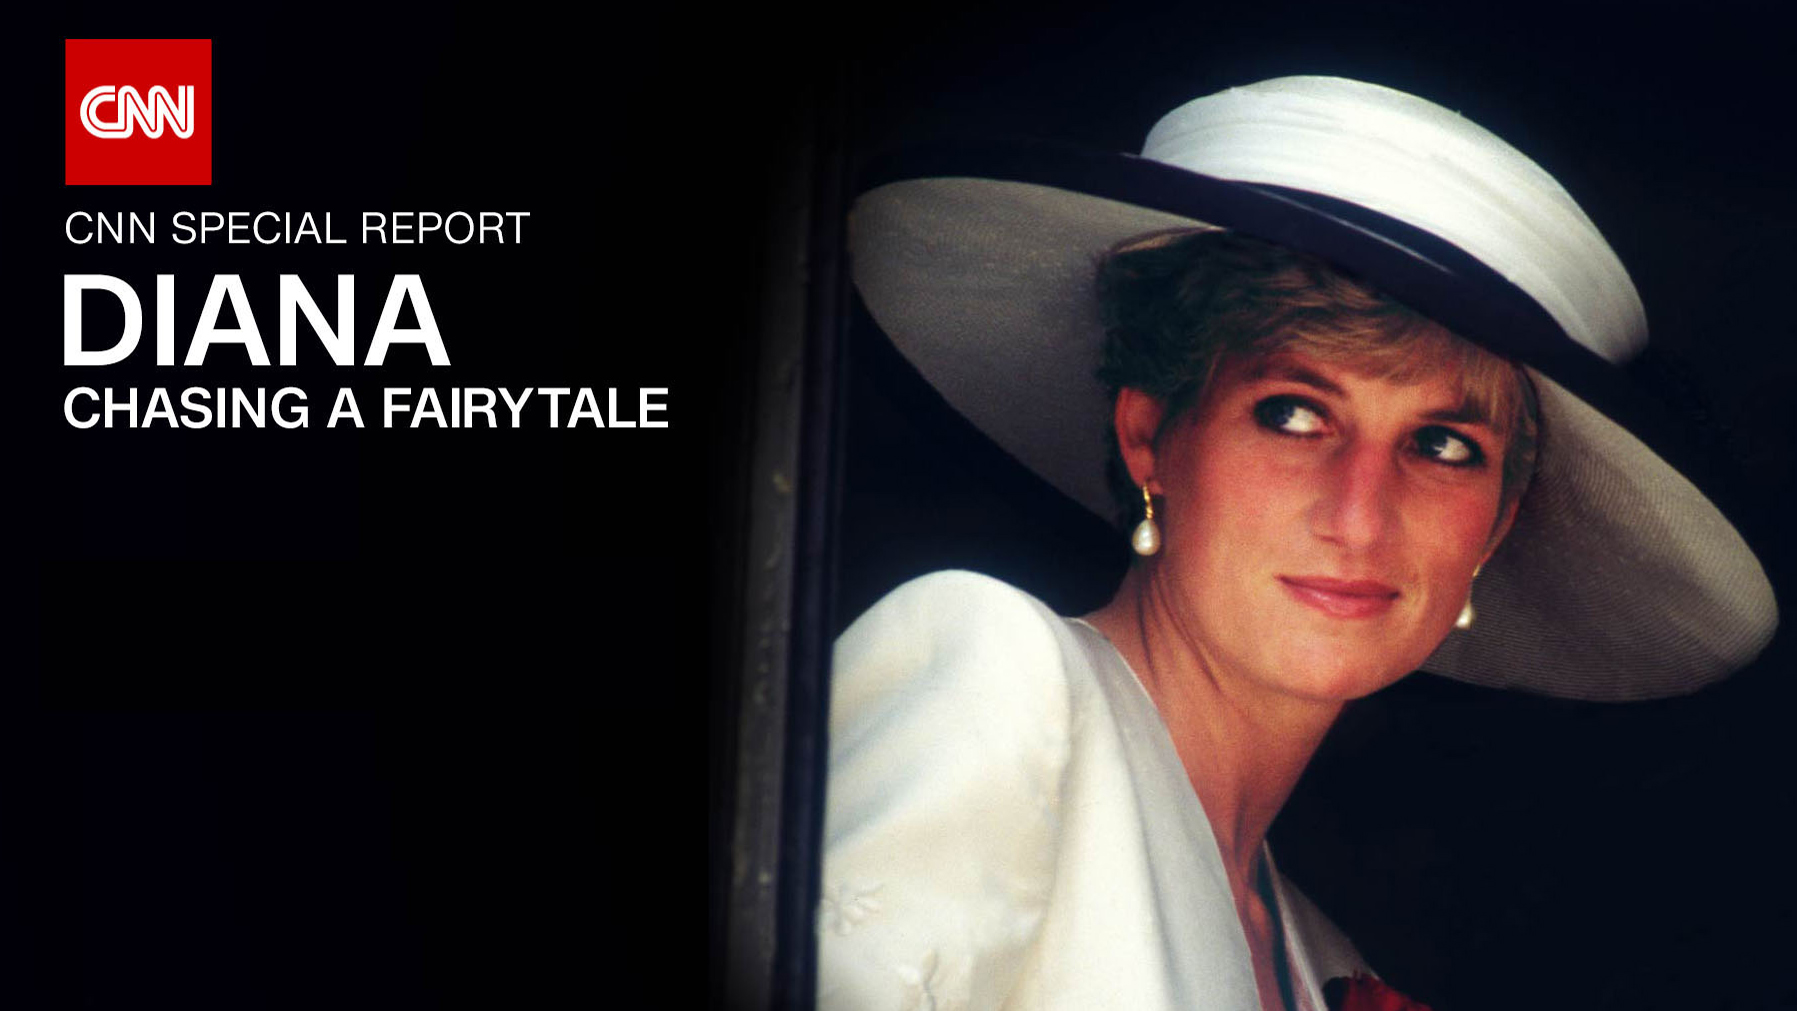 CNN Special Report Presents DIANA: CHASING A FAIRYTALE